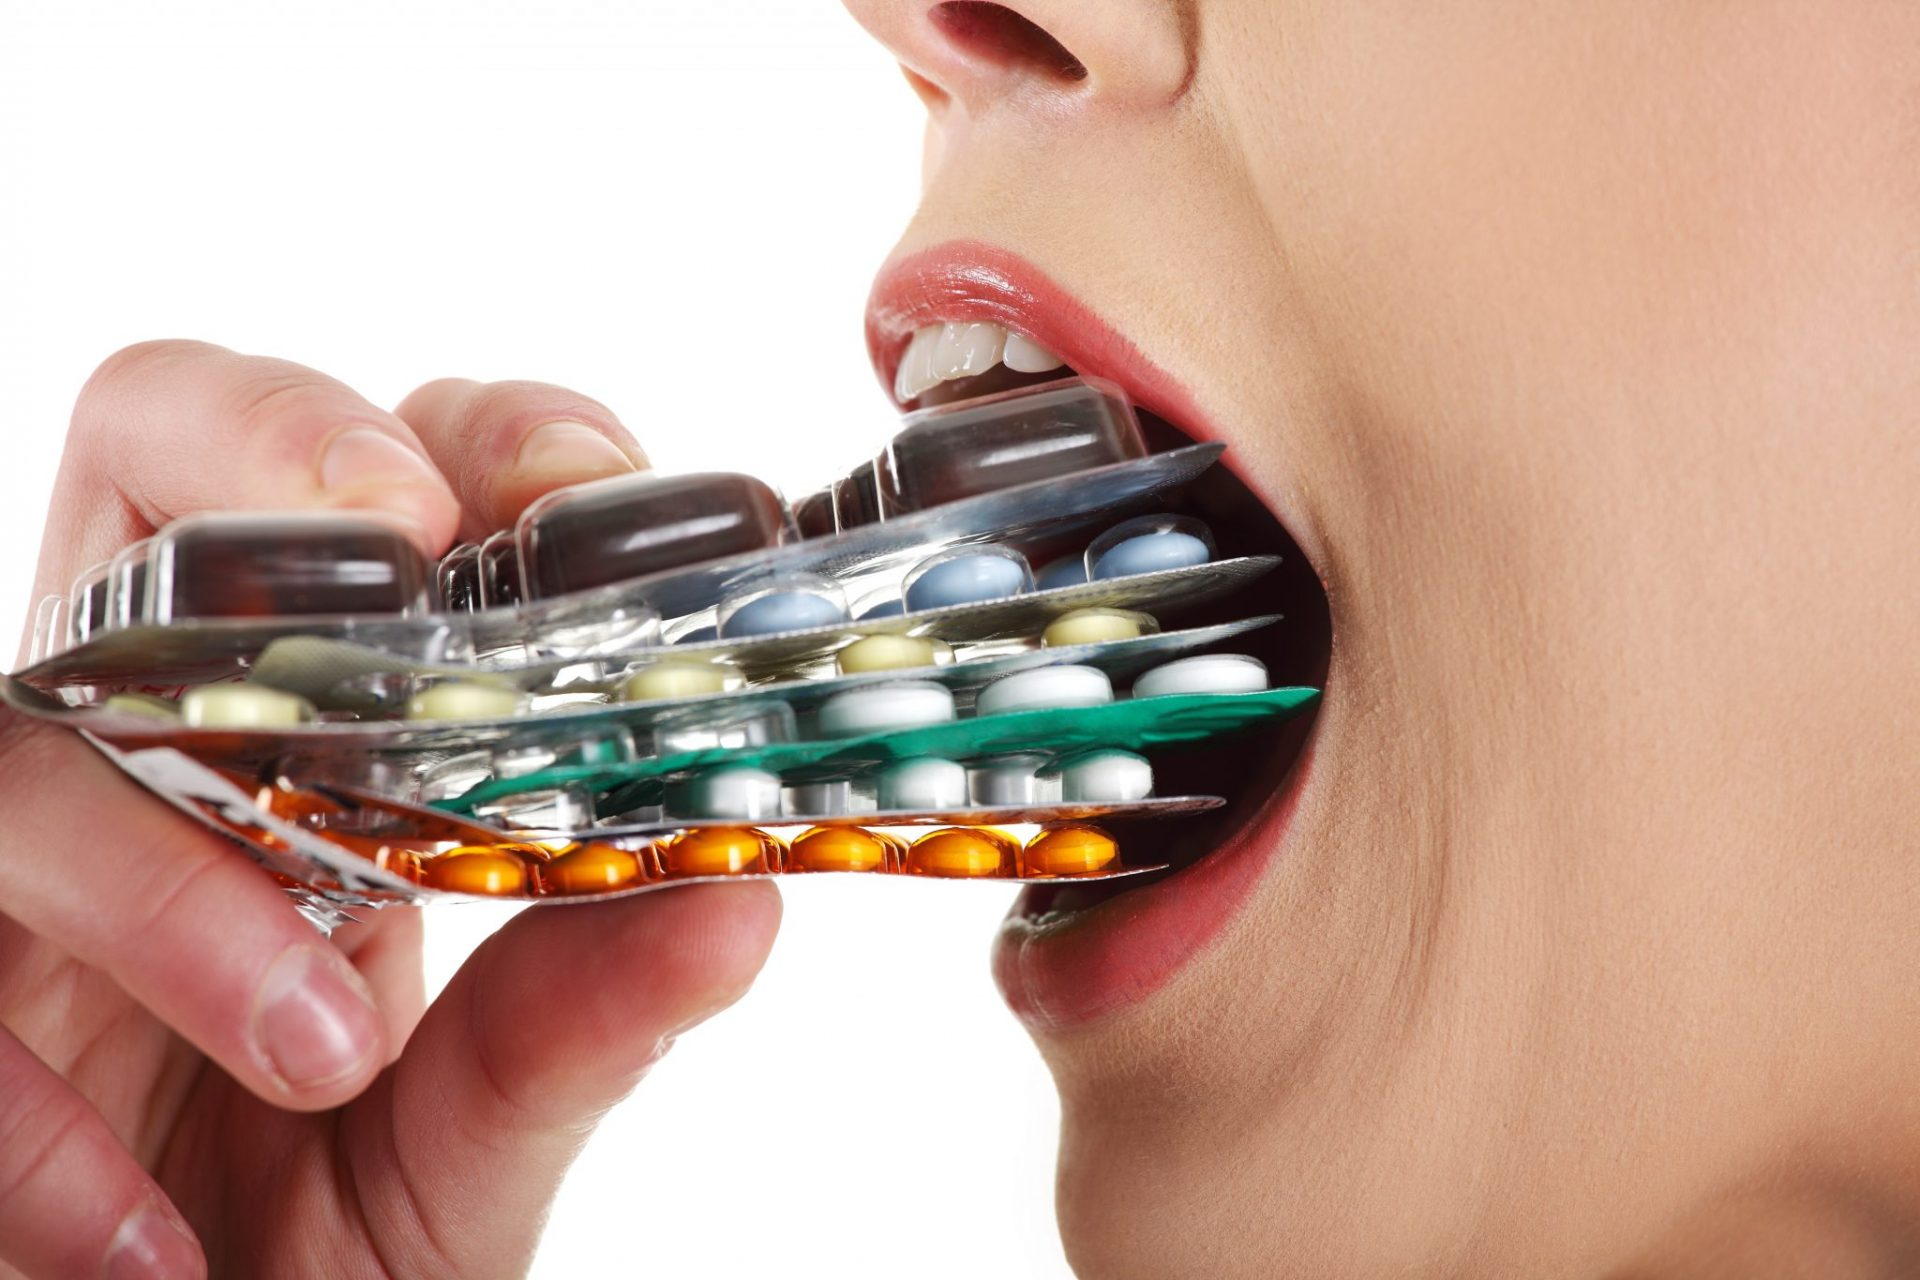 http://www.naturalhealth365.com/wp-content/uploads/2015/01/woman-eating-pills.jpg